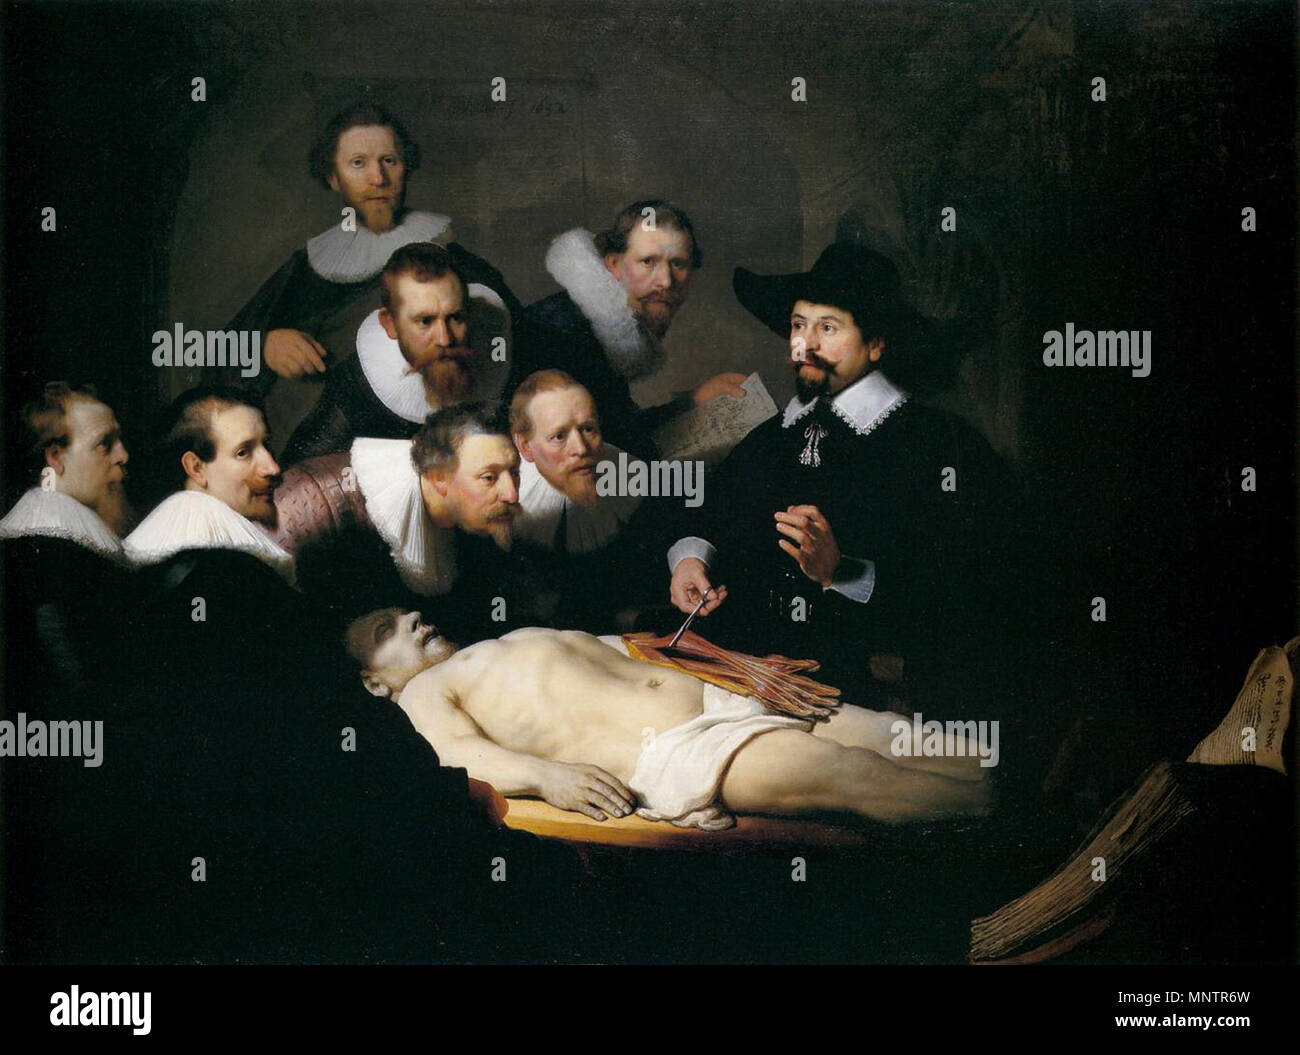 The Anatomy Lesson of Dr. Nicolaes Tulp 1632. 1050 Rembrandt - The ...